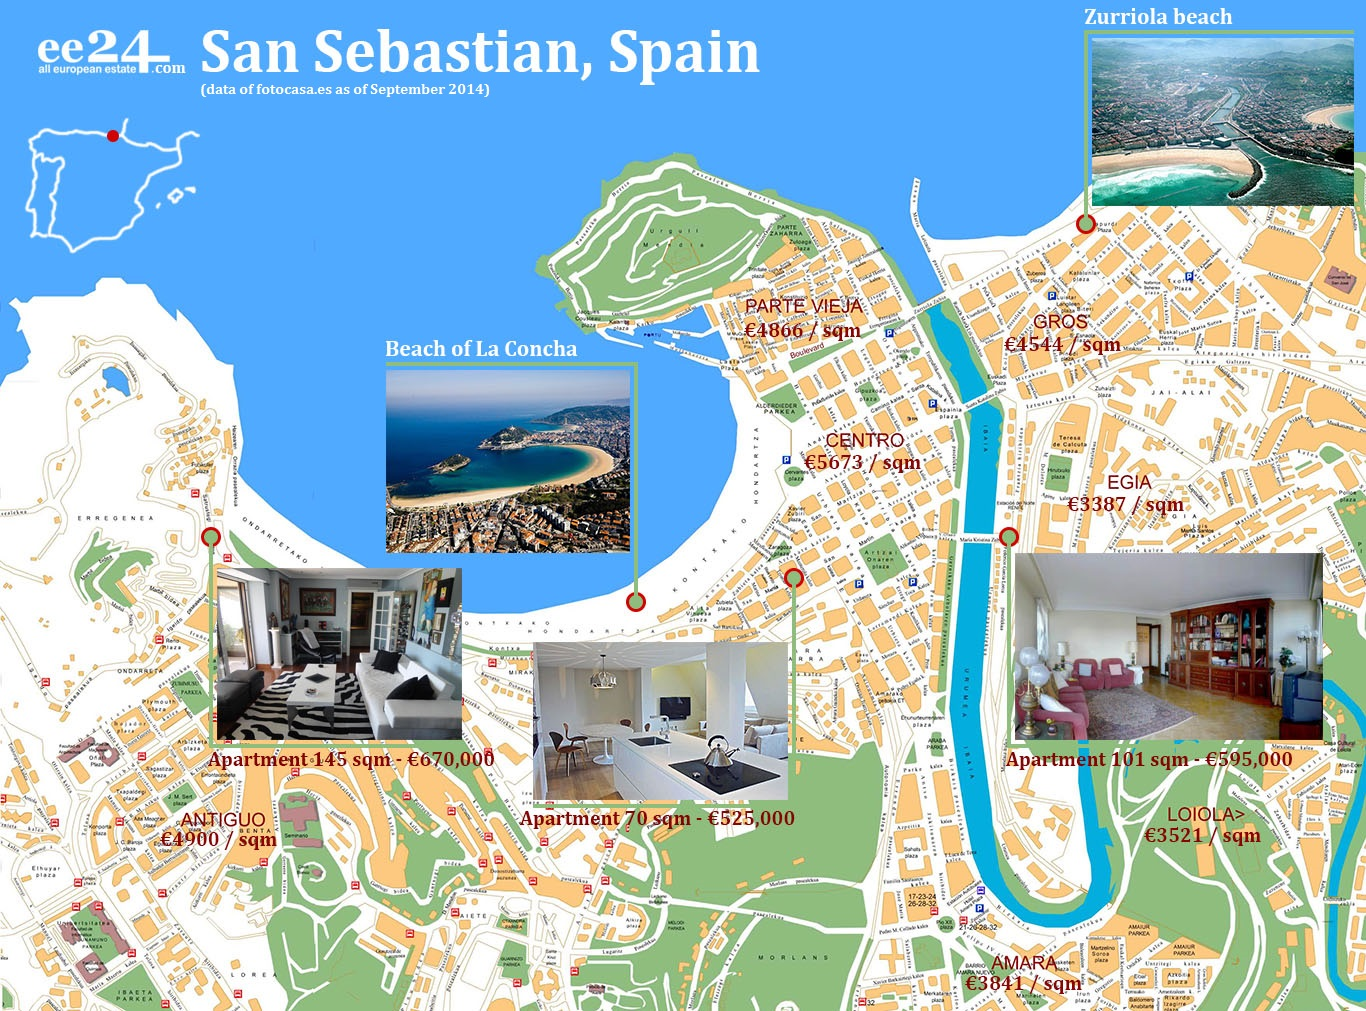 San Sebastian: London prices for Spanish property | Photo 1 | ee24